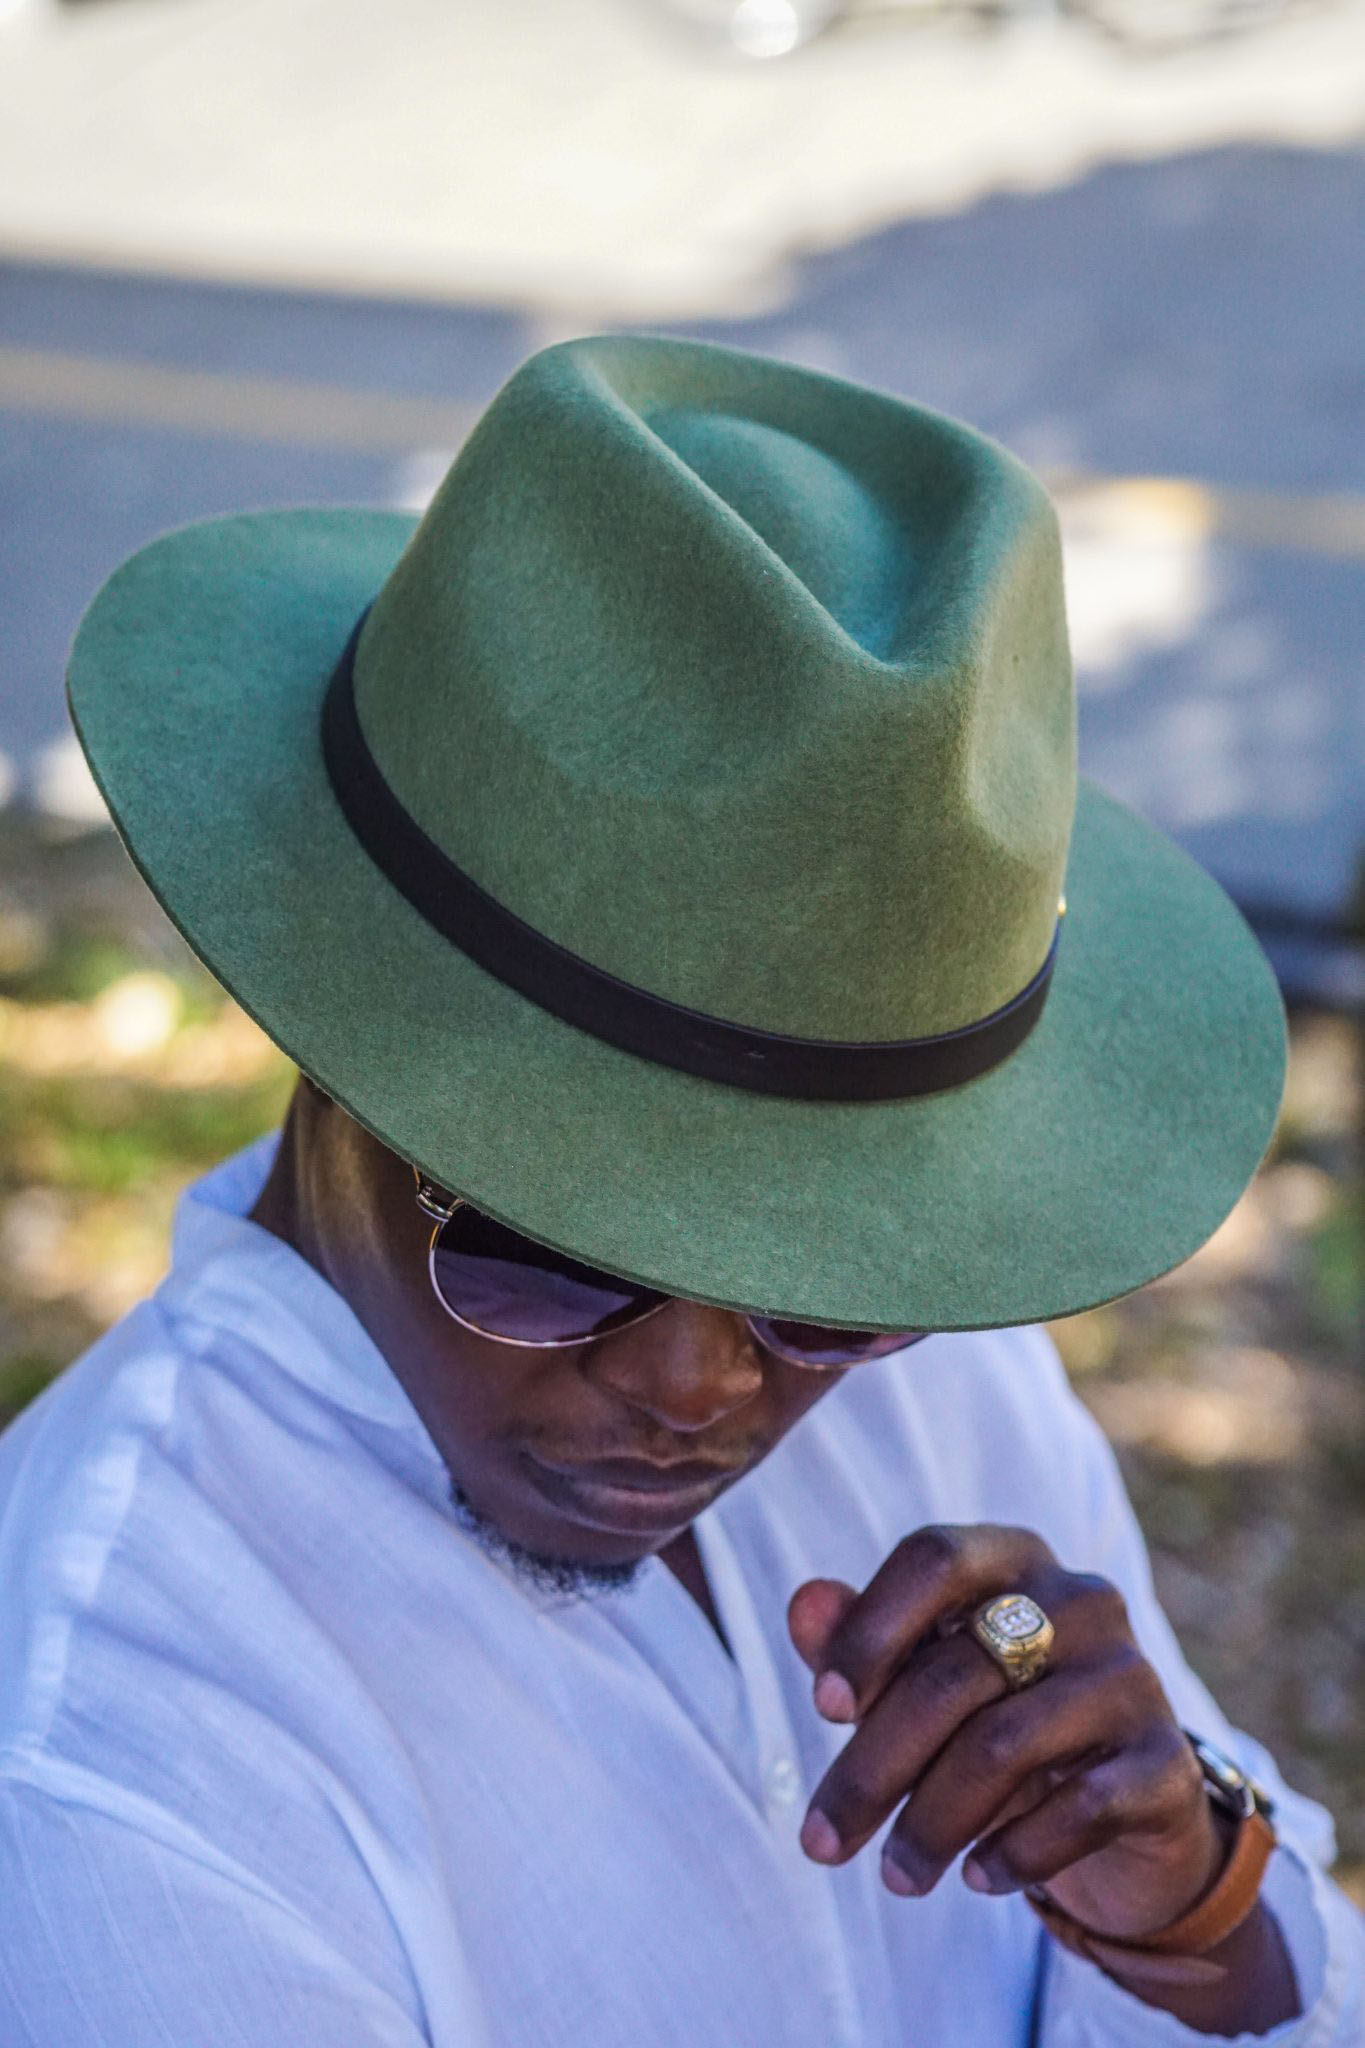 Black man wearing-linen-shirt-southern gents-fedora-hats-brown-suede-chelsea-boots-5